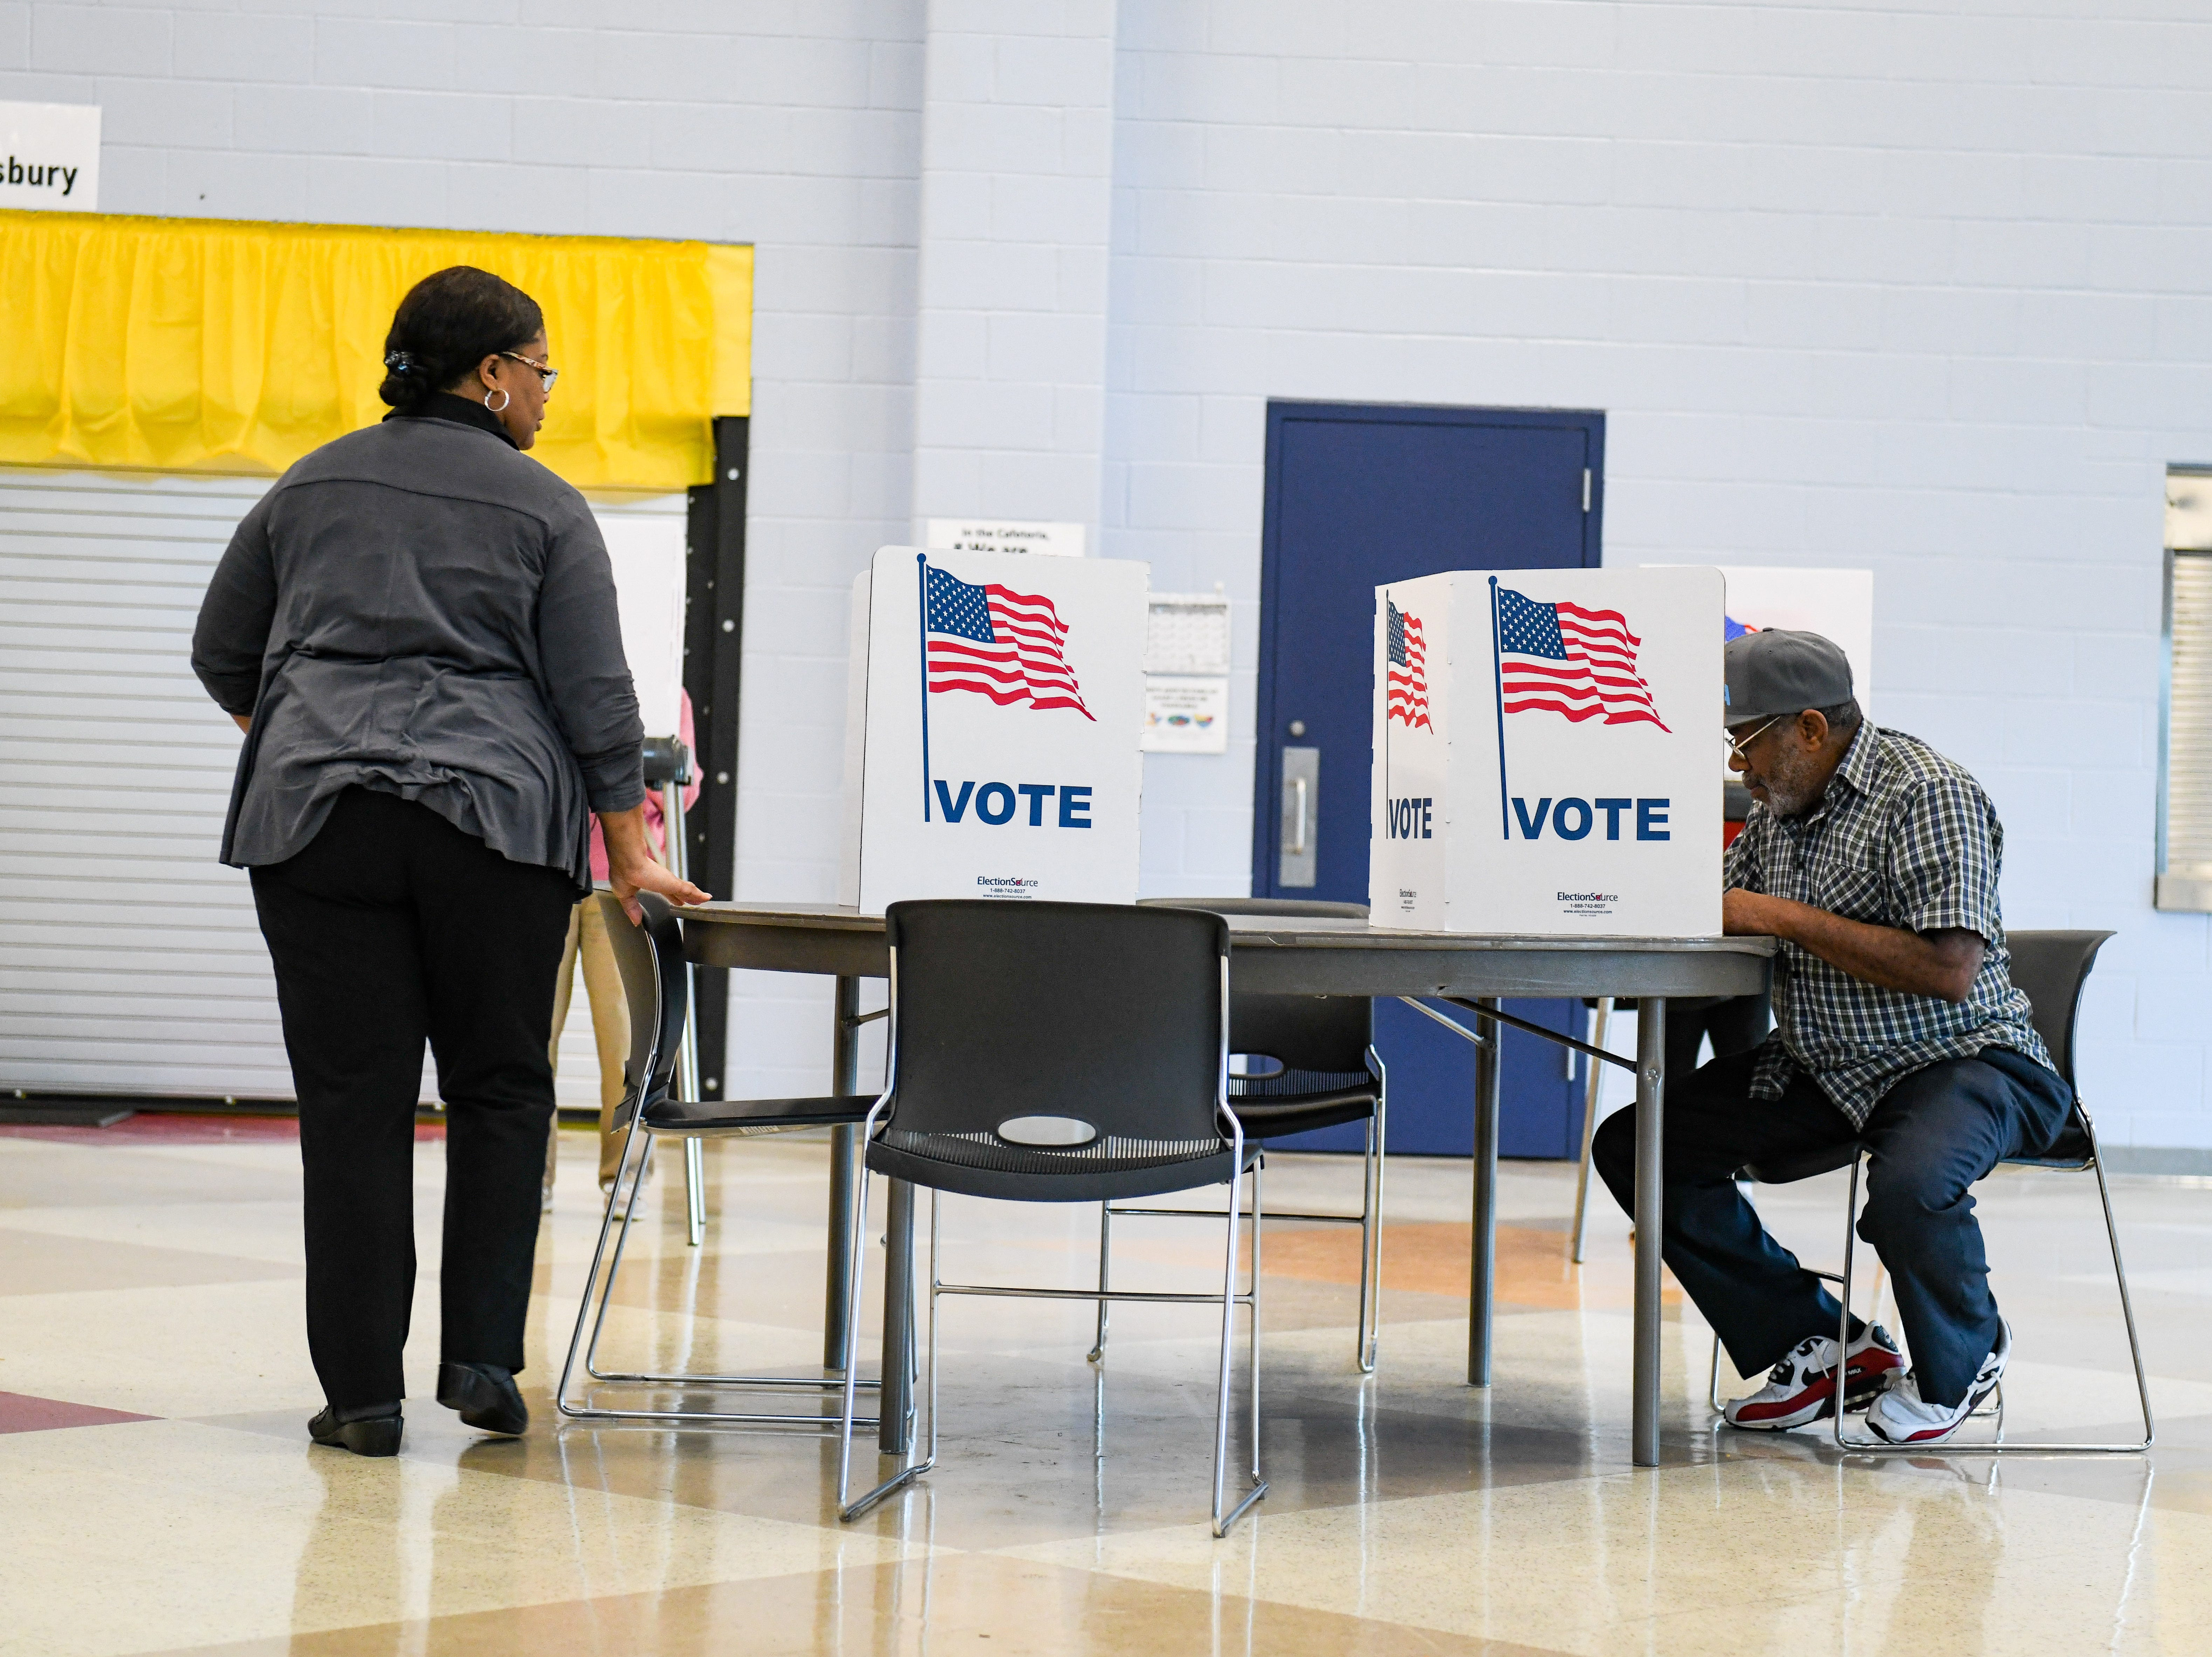 Walter Torchon votes in the midterm election at North Salisbury Elementary School on Tuesday, Nov 6, 2018.